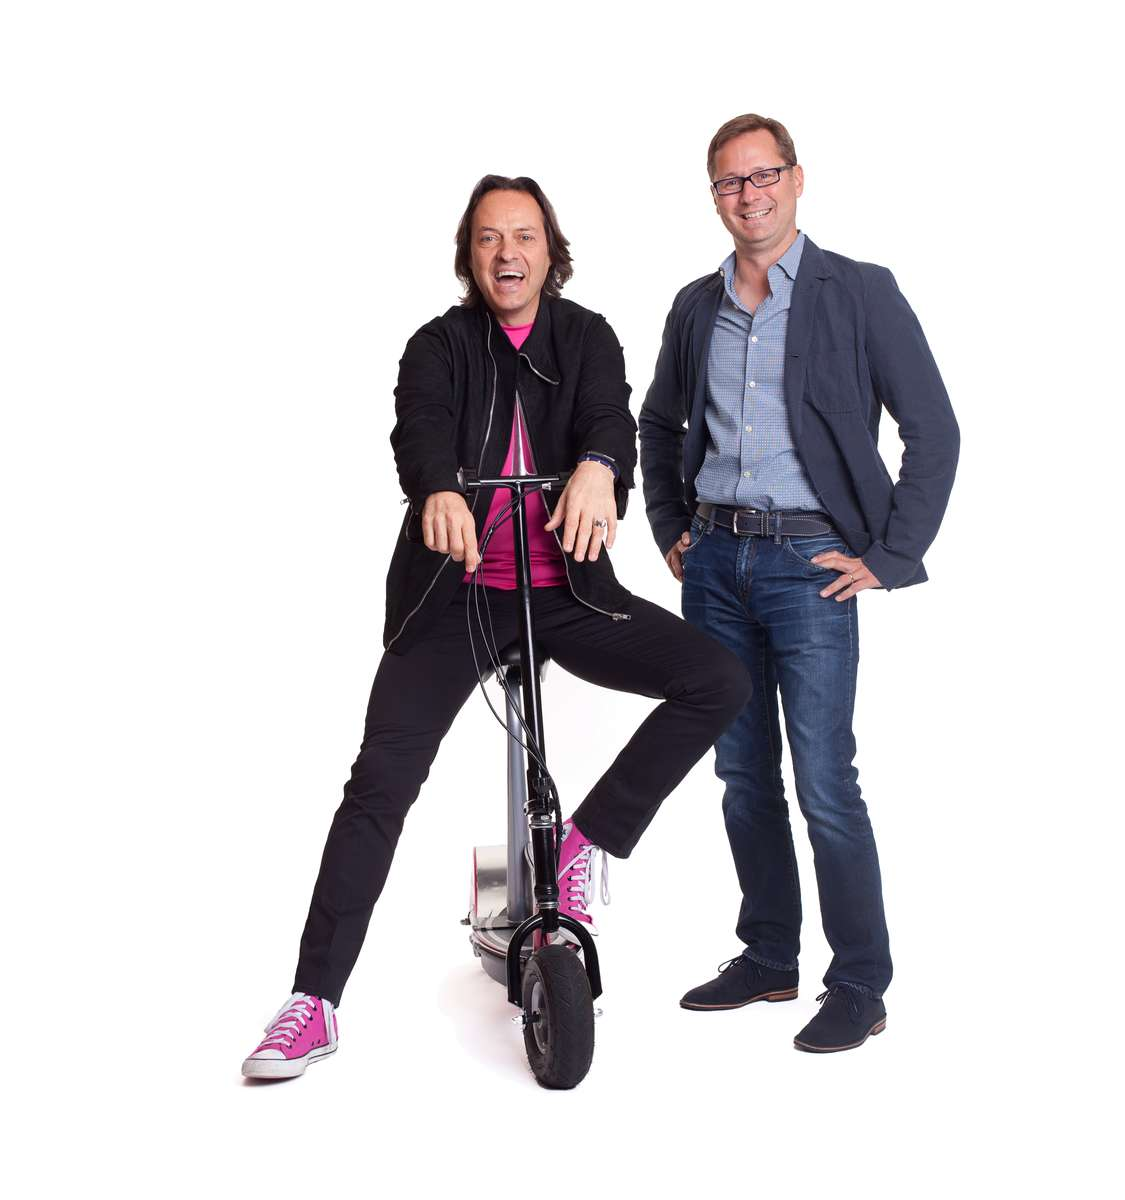 T-Mobile CEO John Legere, left, and CMO Michael Sievert at company headquarters in Bellevue, WA on Wednesday August 6, 2014. Photo by Ron Wurzer/Getty Images